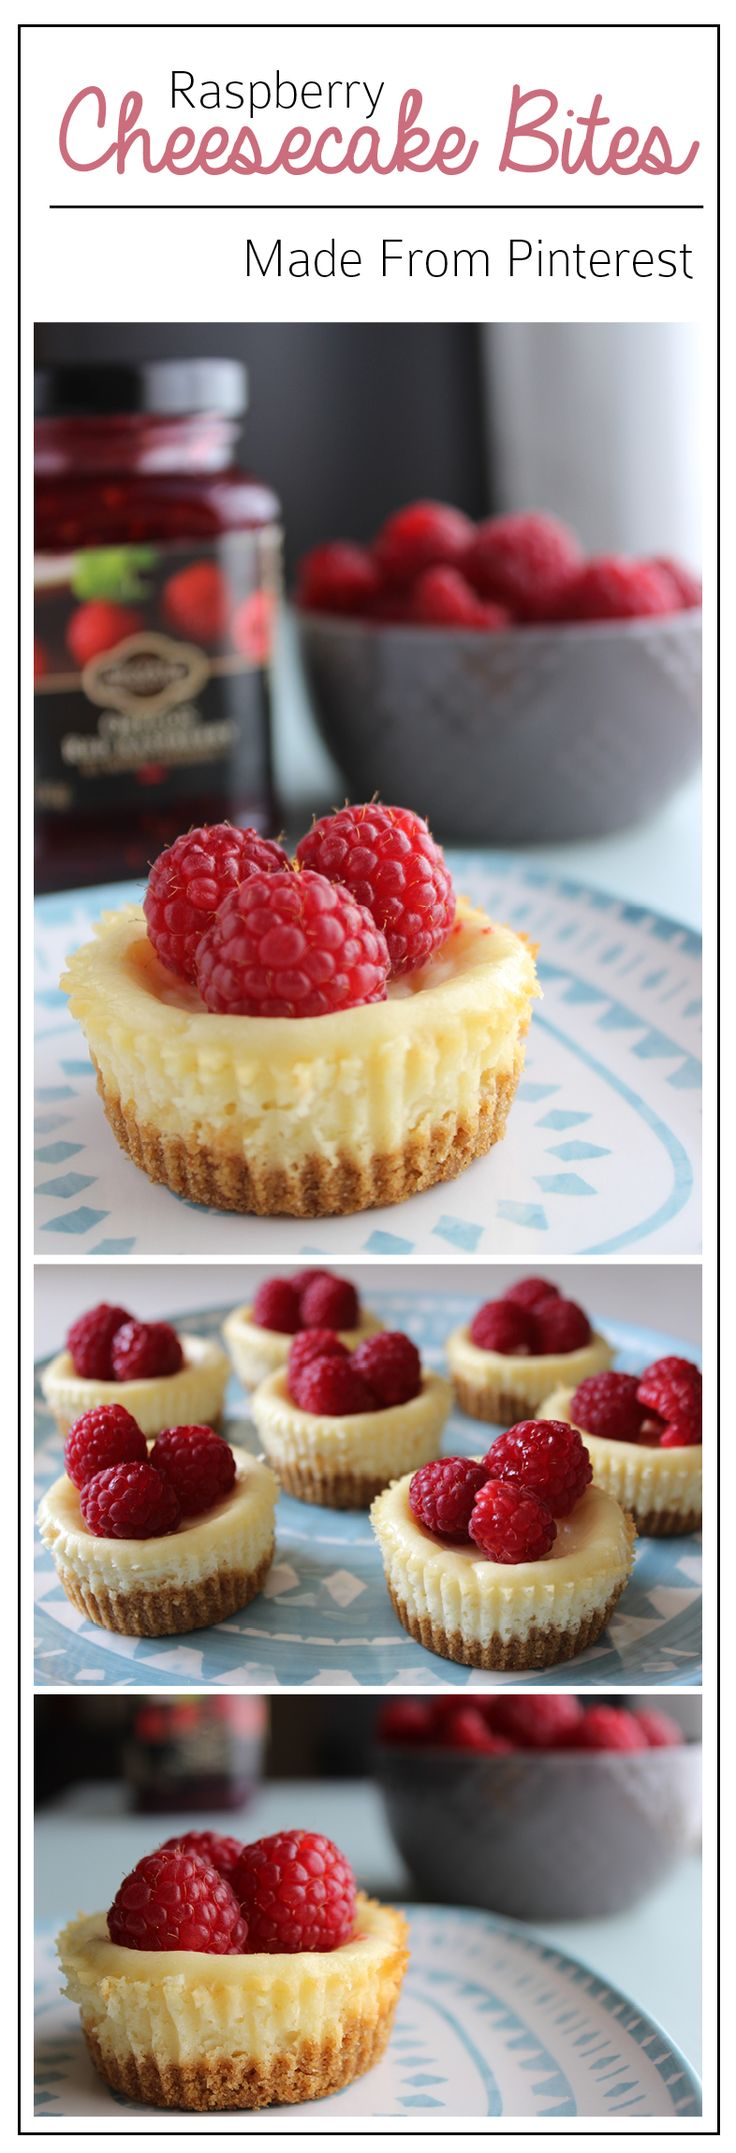 Cheesecake-bites-recipe